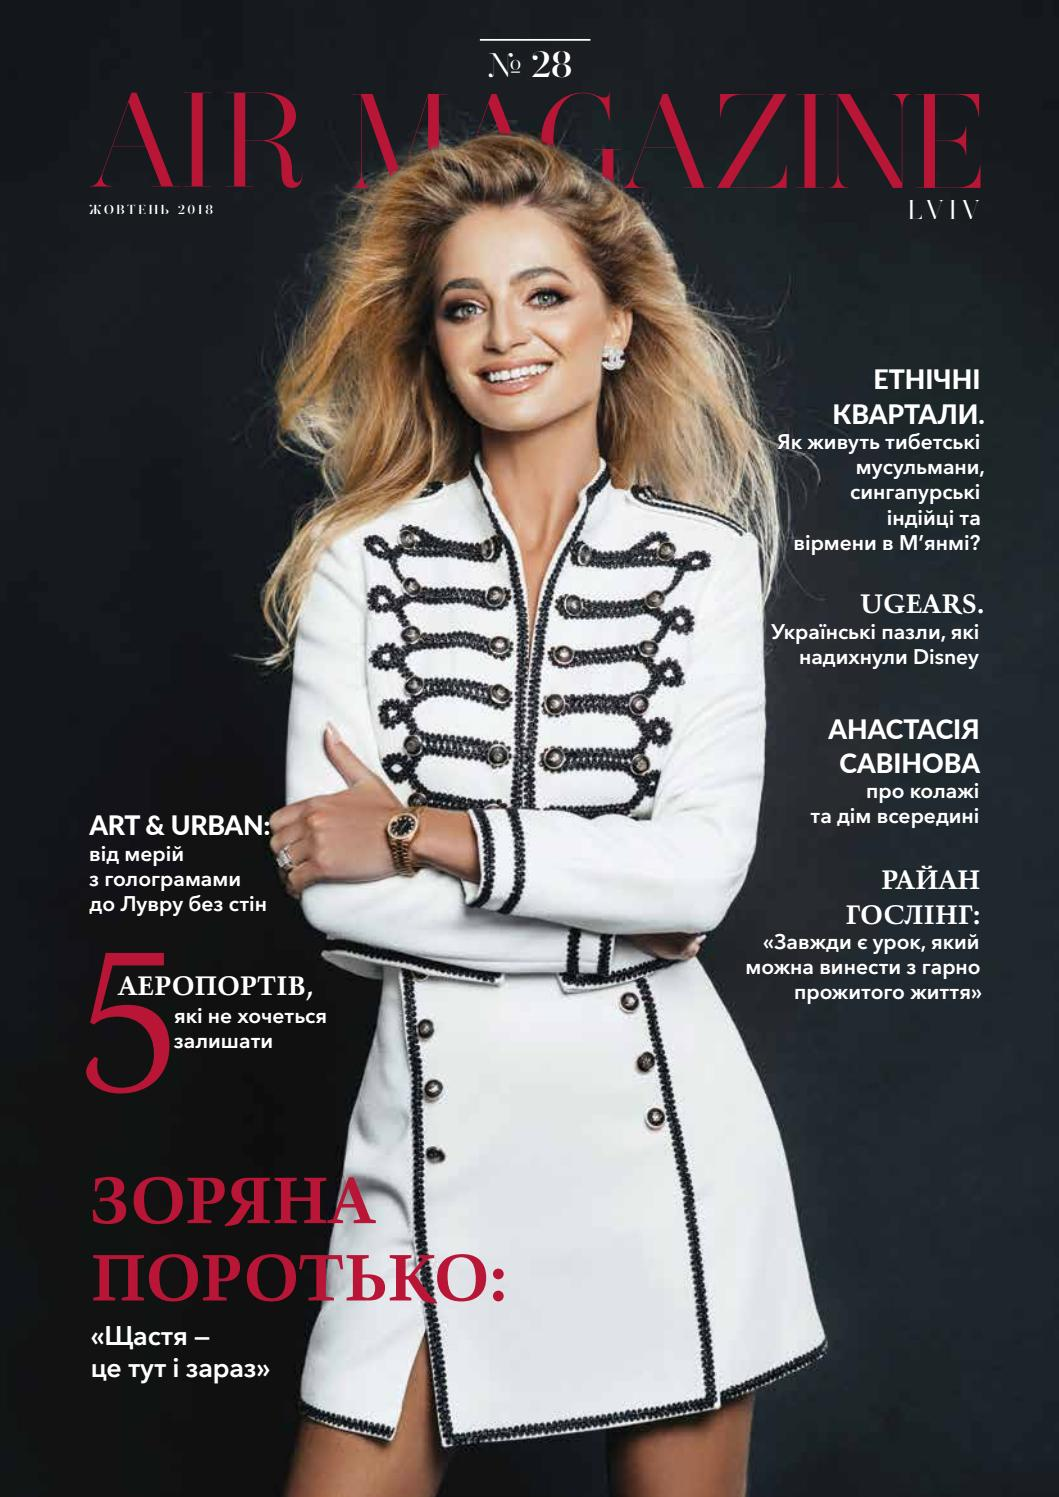 Air magazine lviv 28 by AIR MAGAZINE LVIV - issuu 2acd51f79e068